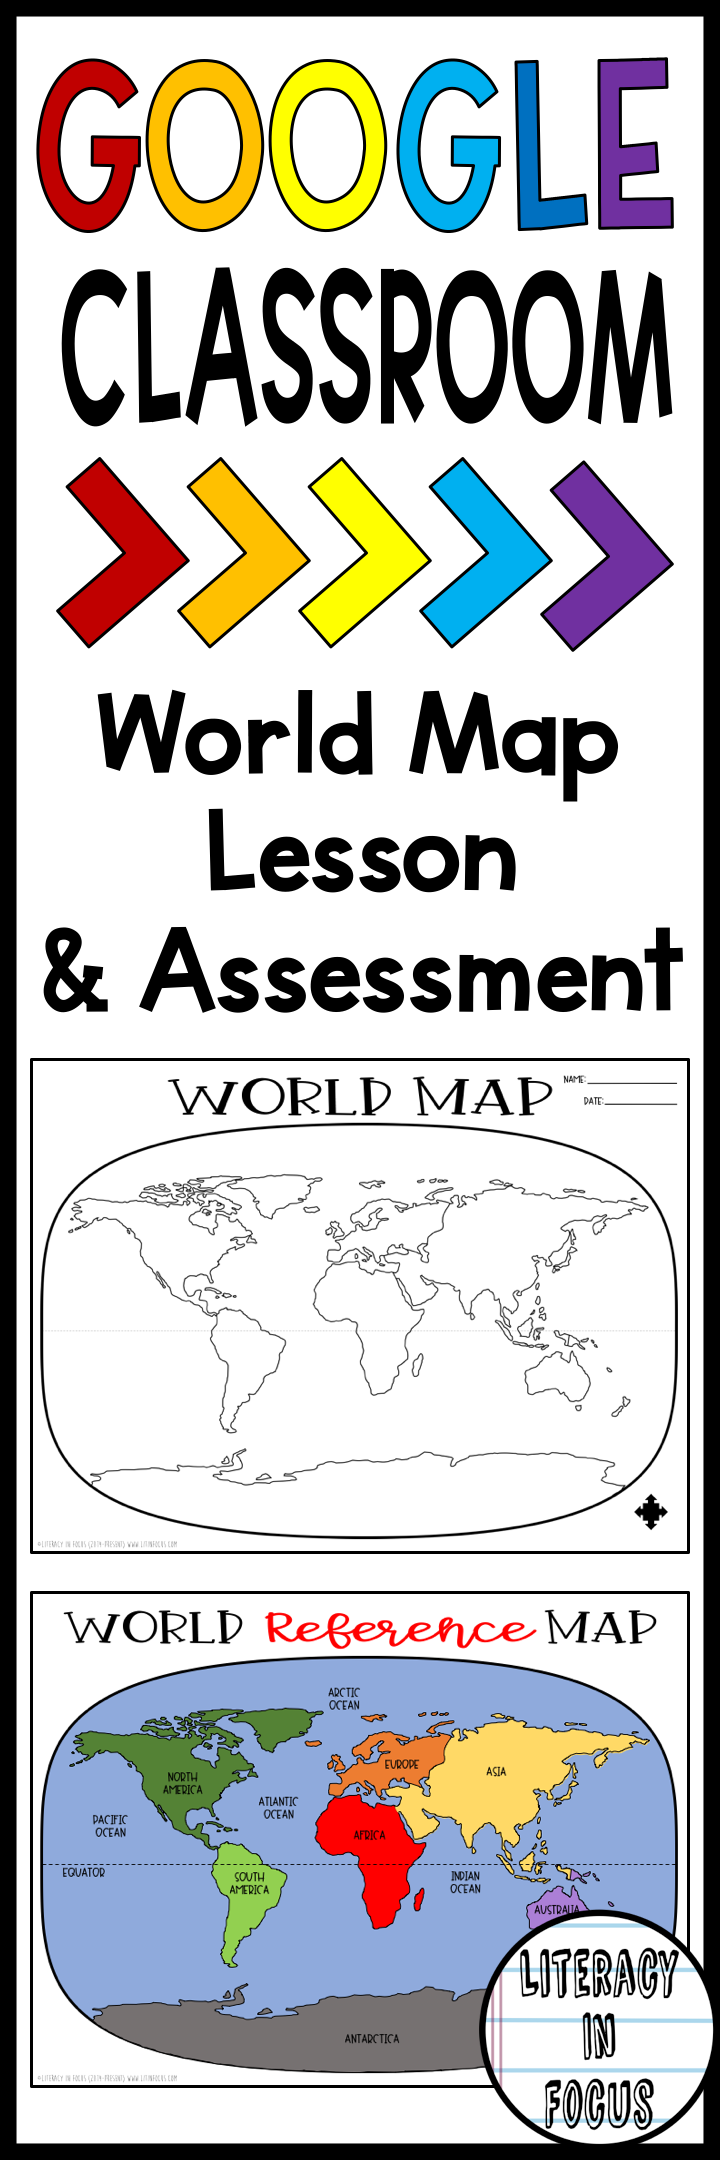 Digital and pdf world map lesson and assessment continents oceans digital and pdf world map lesson and assessment continents oceans and the equator gumiabroncs Images